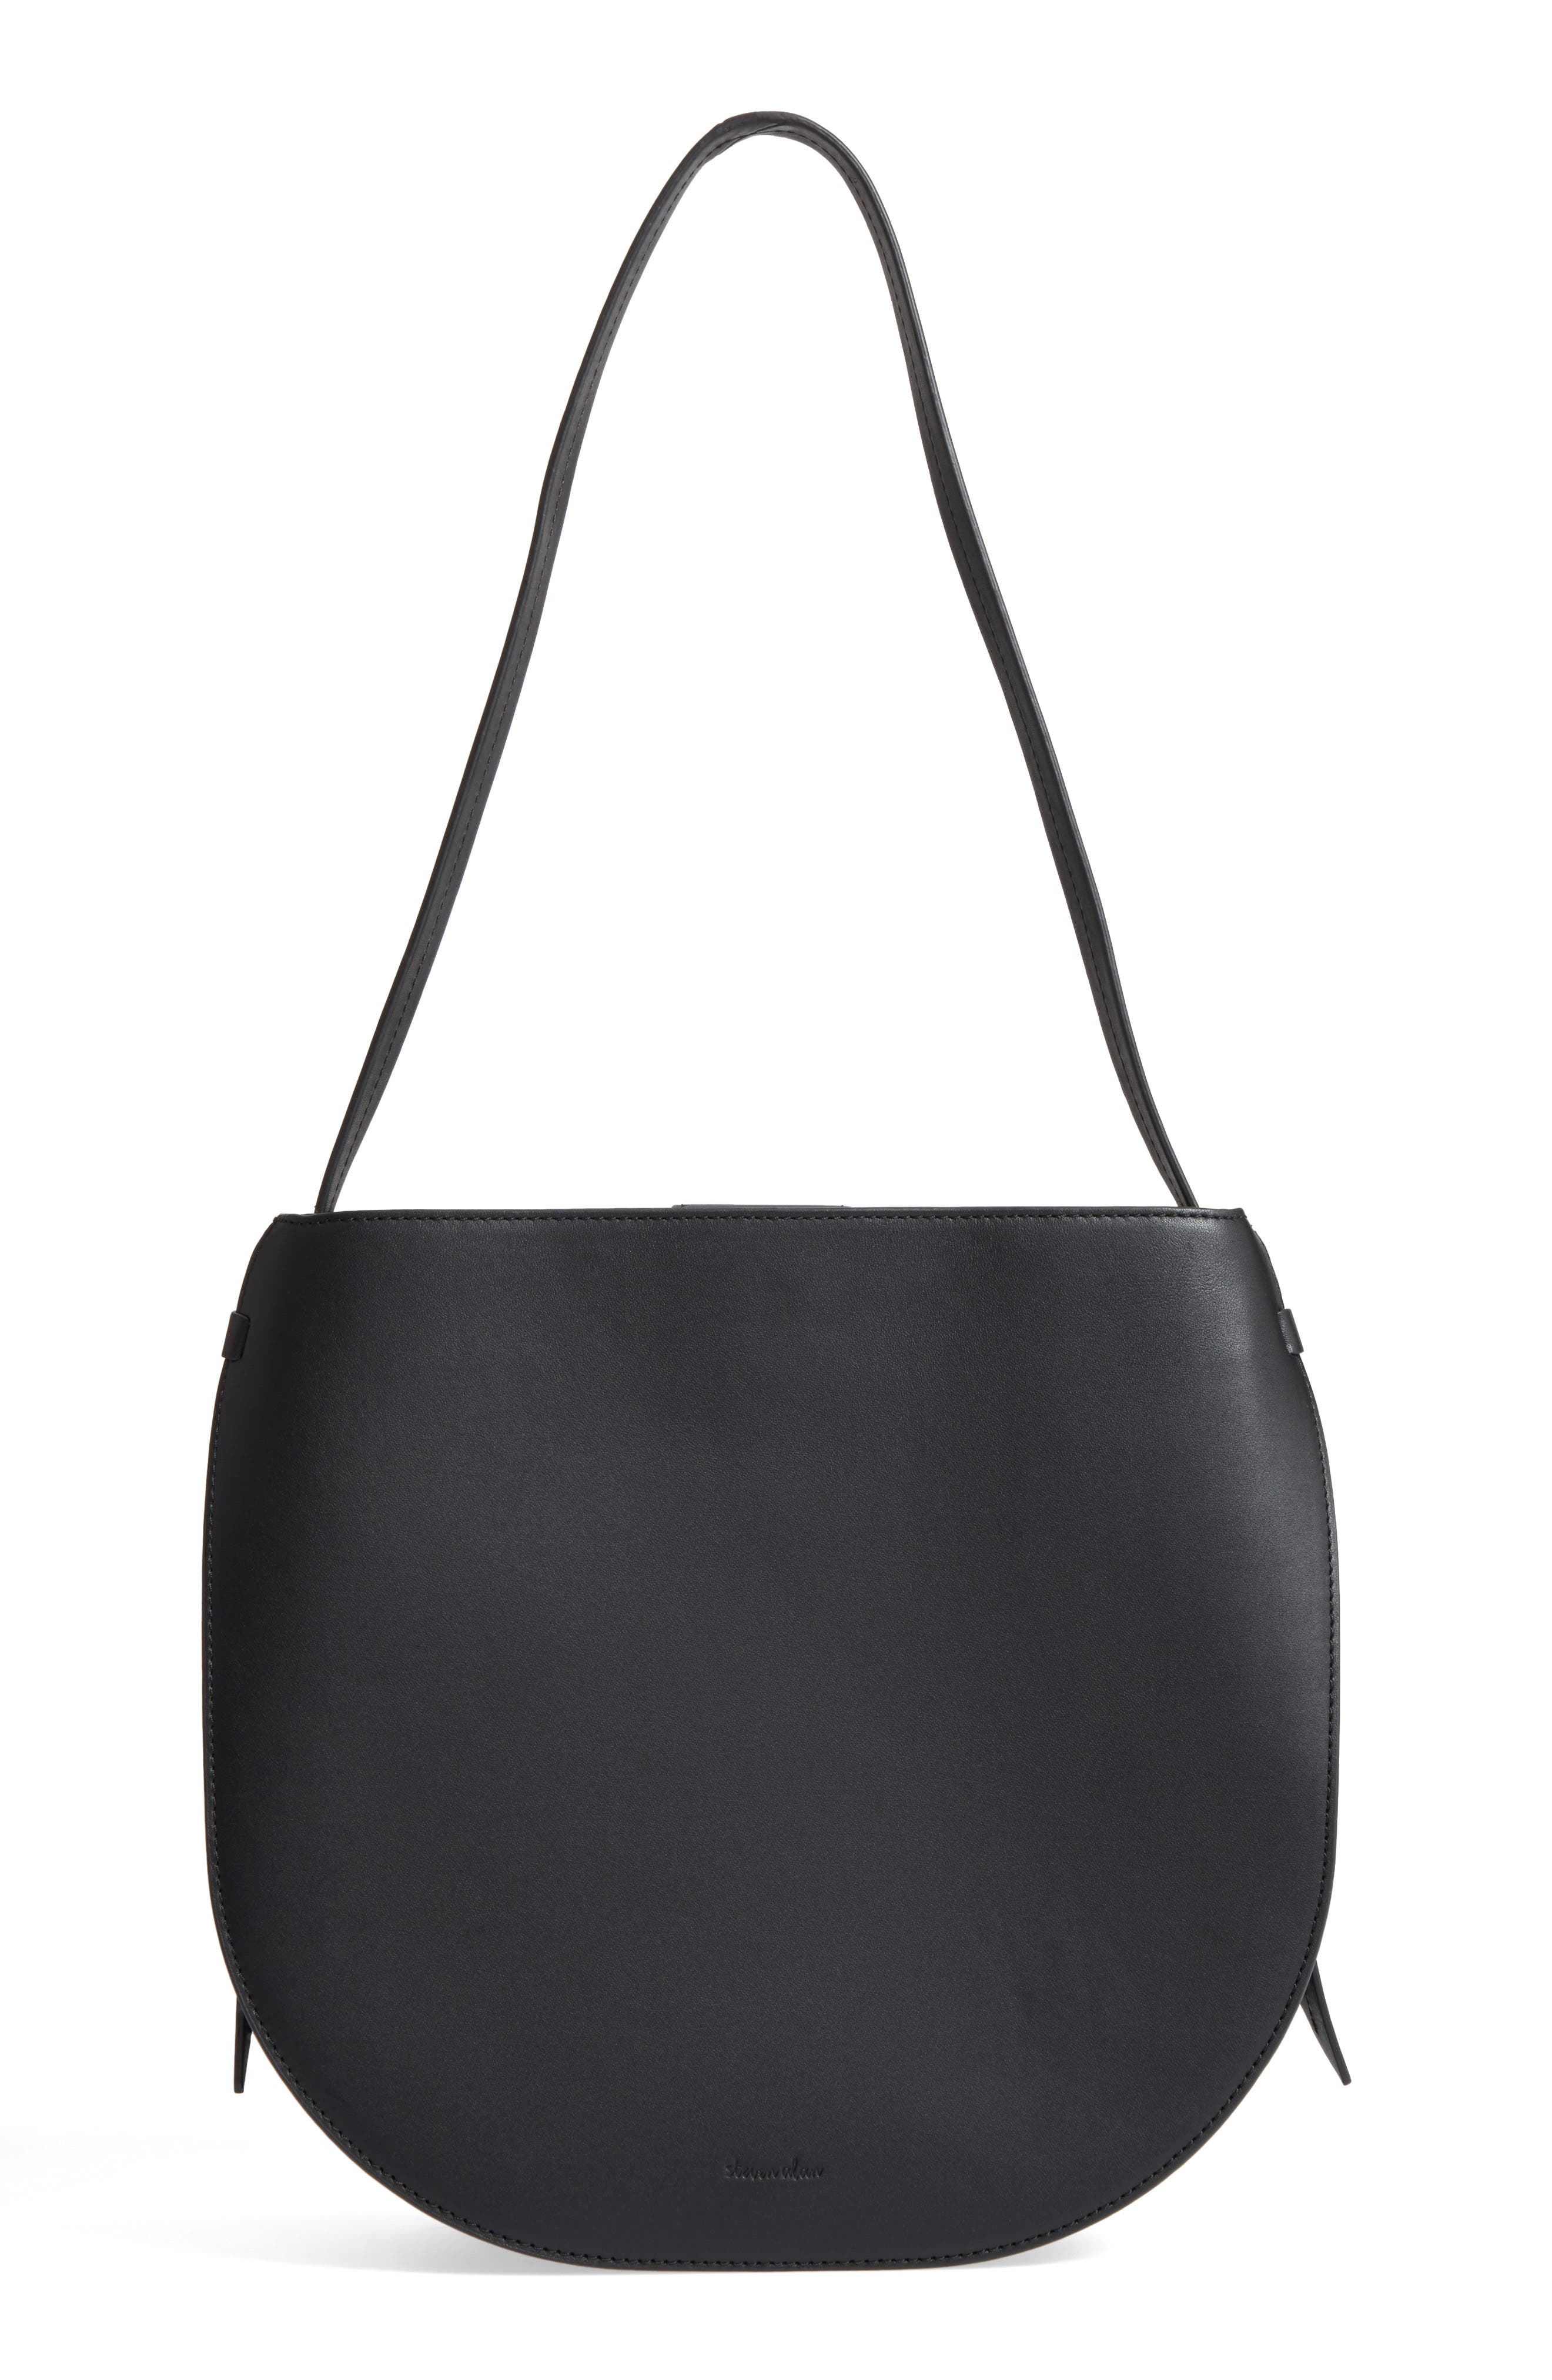 Helena Half Moon Leather Shoulder Bag,                         Main,                         color, Black